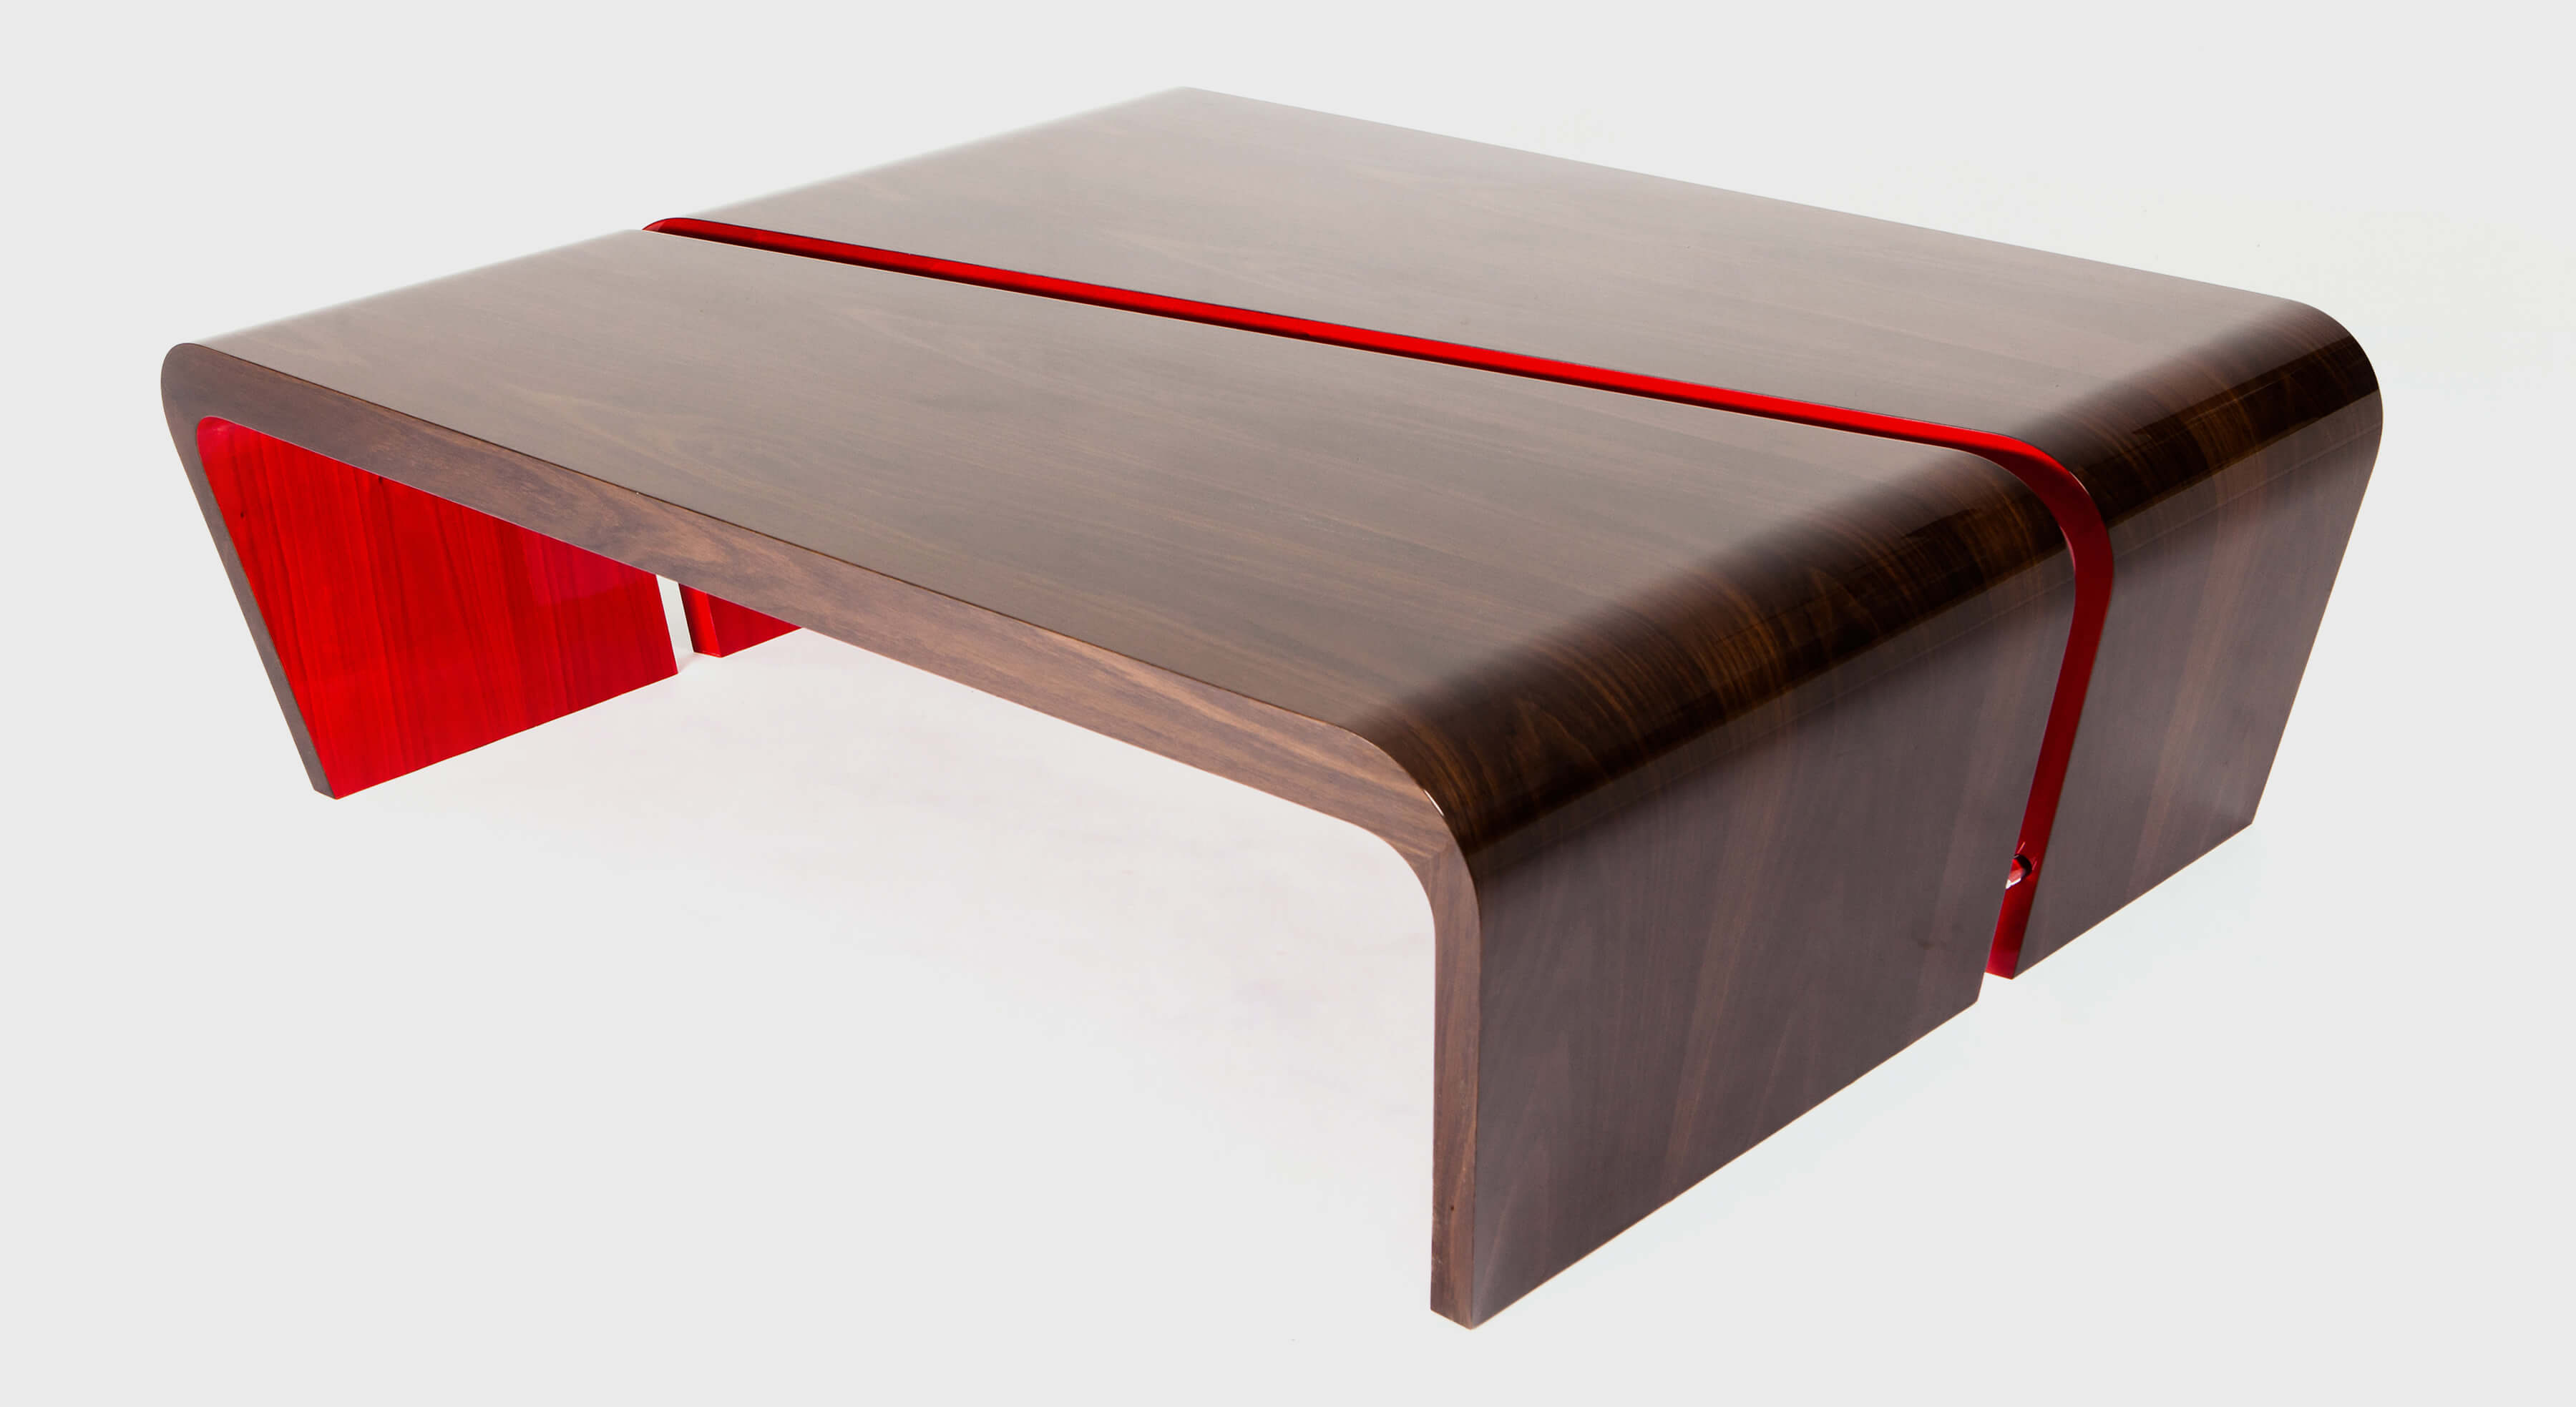 Pair of geometric side tables with playful red detail